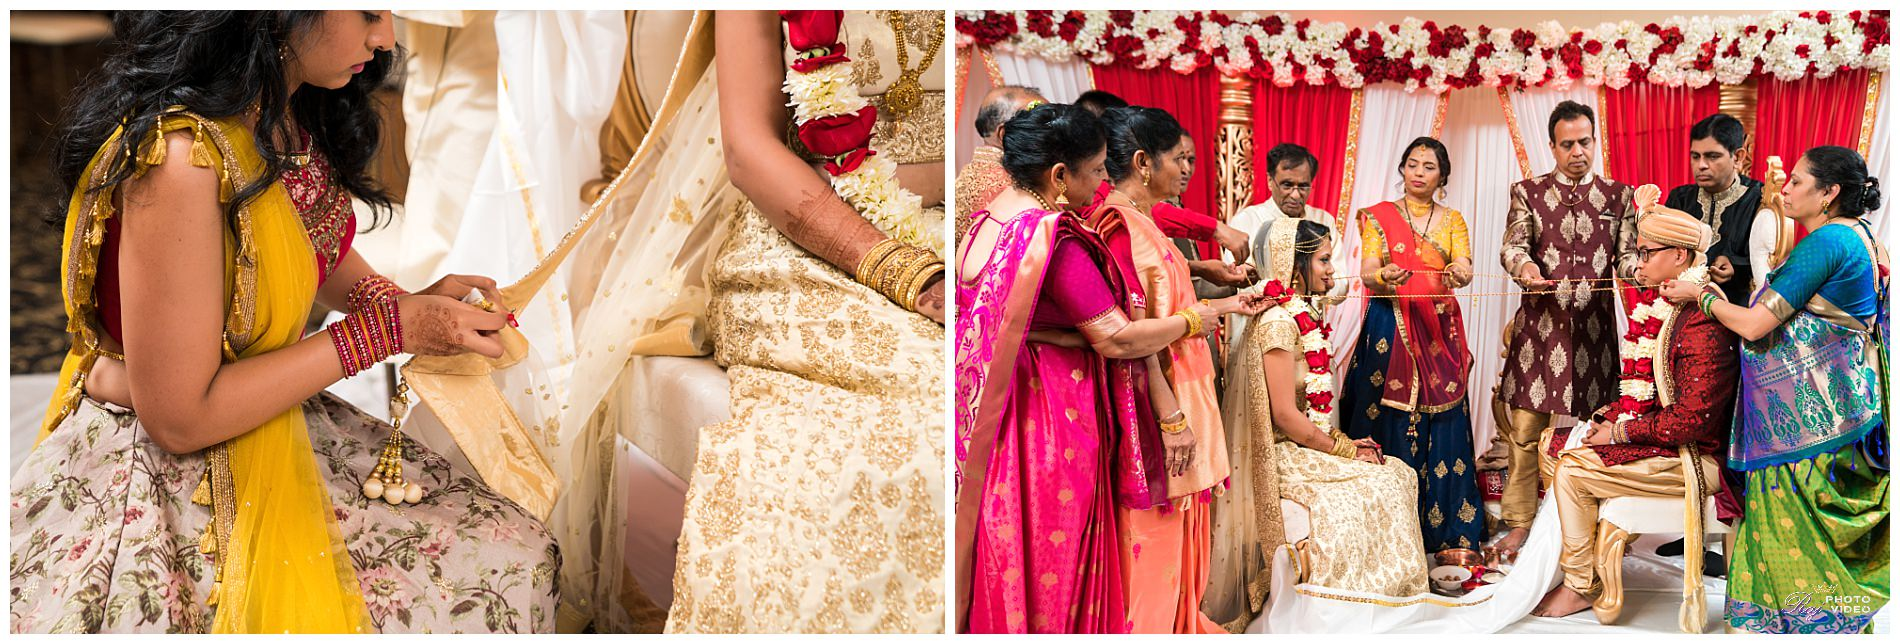 Aashirwad-Palace-Randolph-NJ-Hindu-Wedding-Ceremony-Khusbu-Jeff-12.jpg